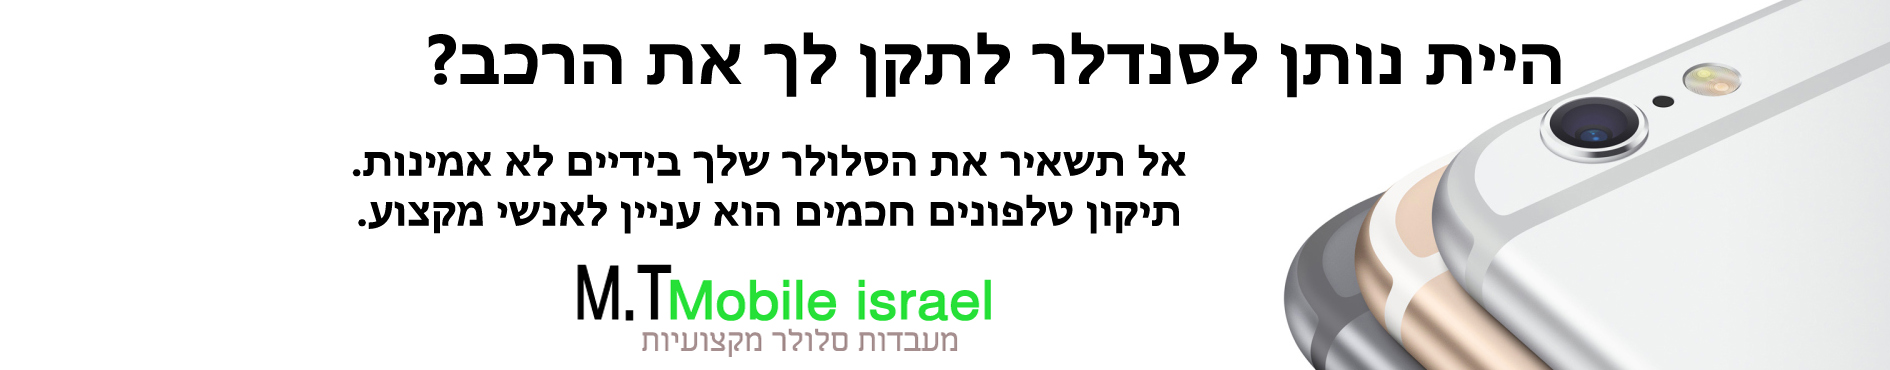 פנטסטי תיקון U2 באייפון 6 iPhone YG-37